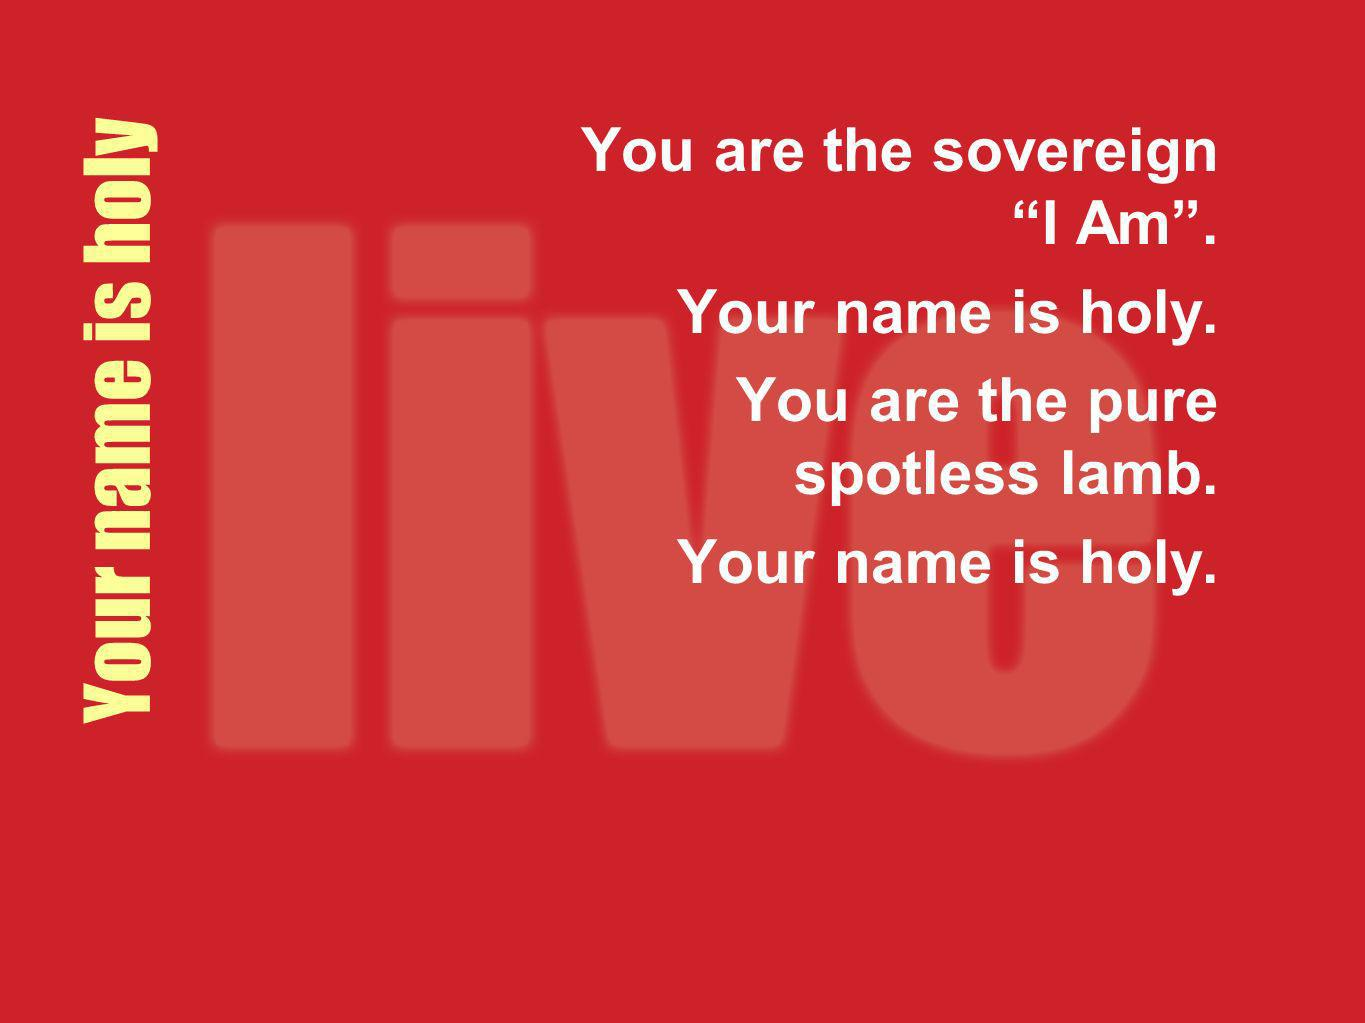 Your name is holy You are the sovereign I Am. Your name is holy. You are the pure spotless lamb. Your name is holy.